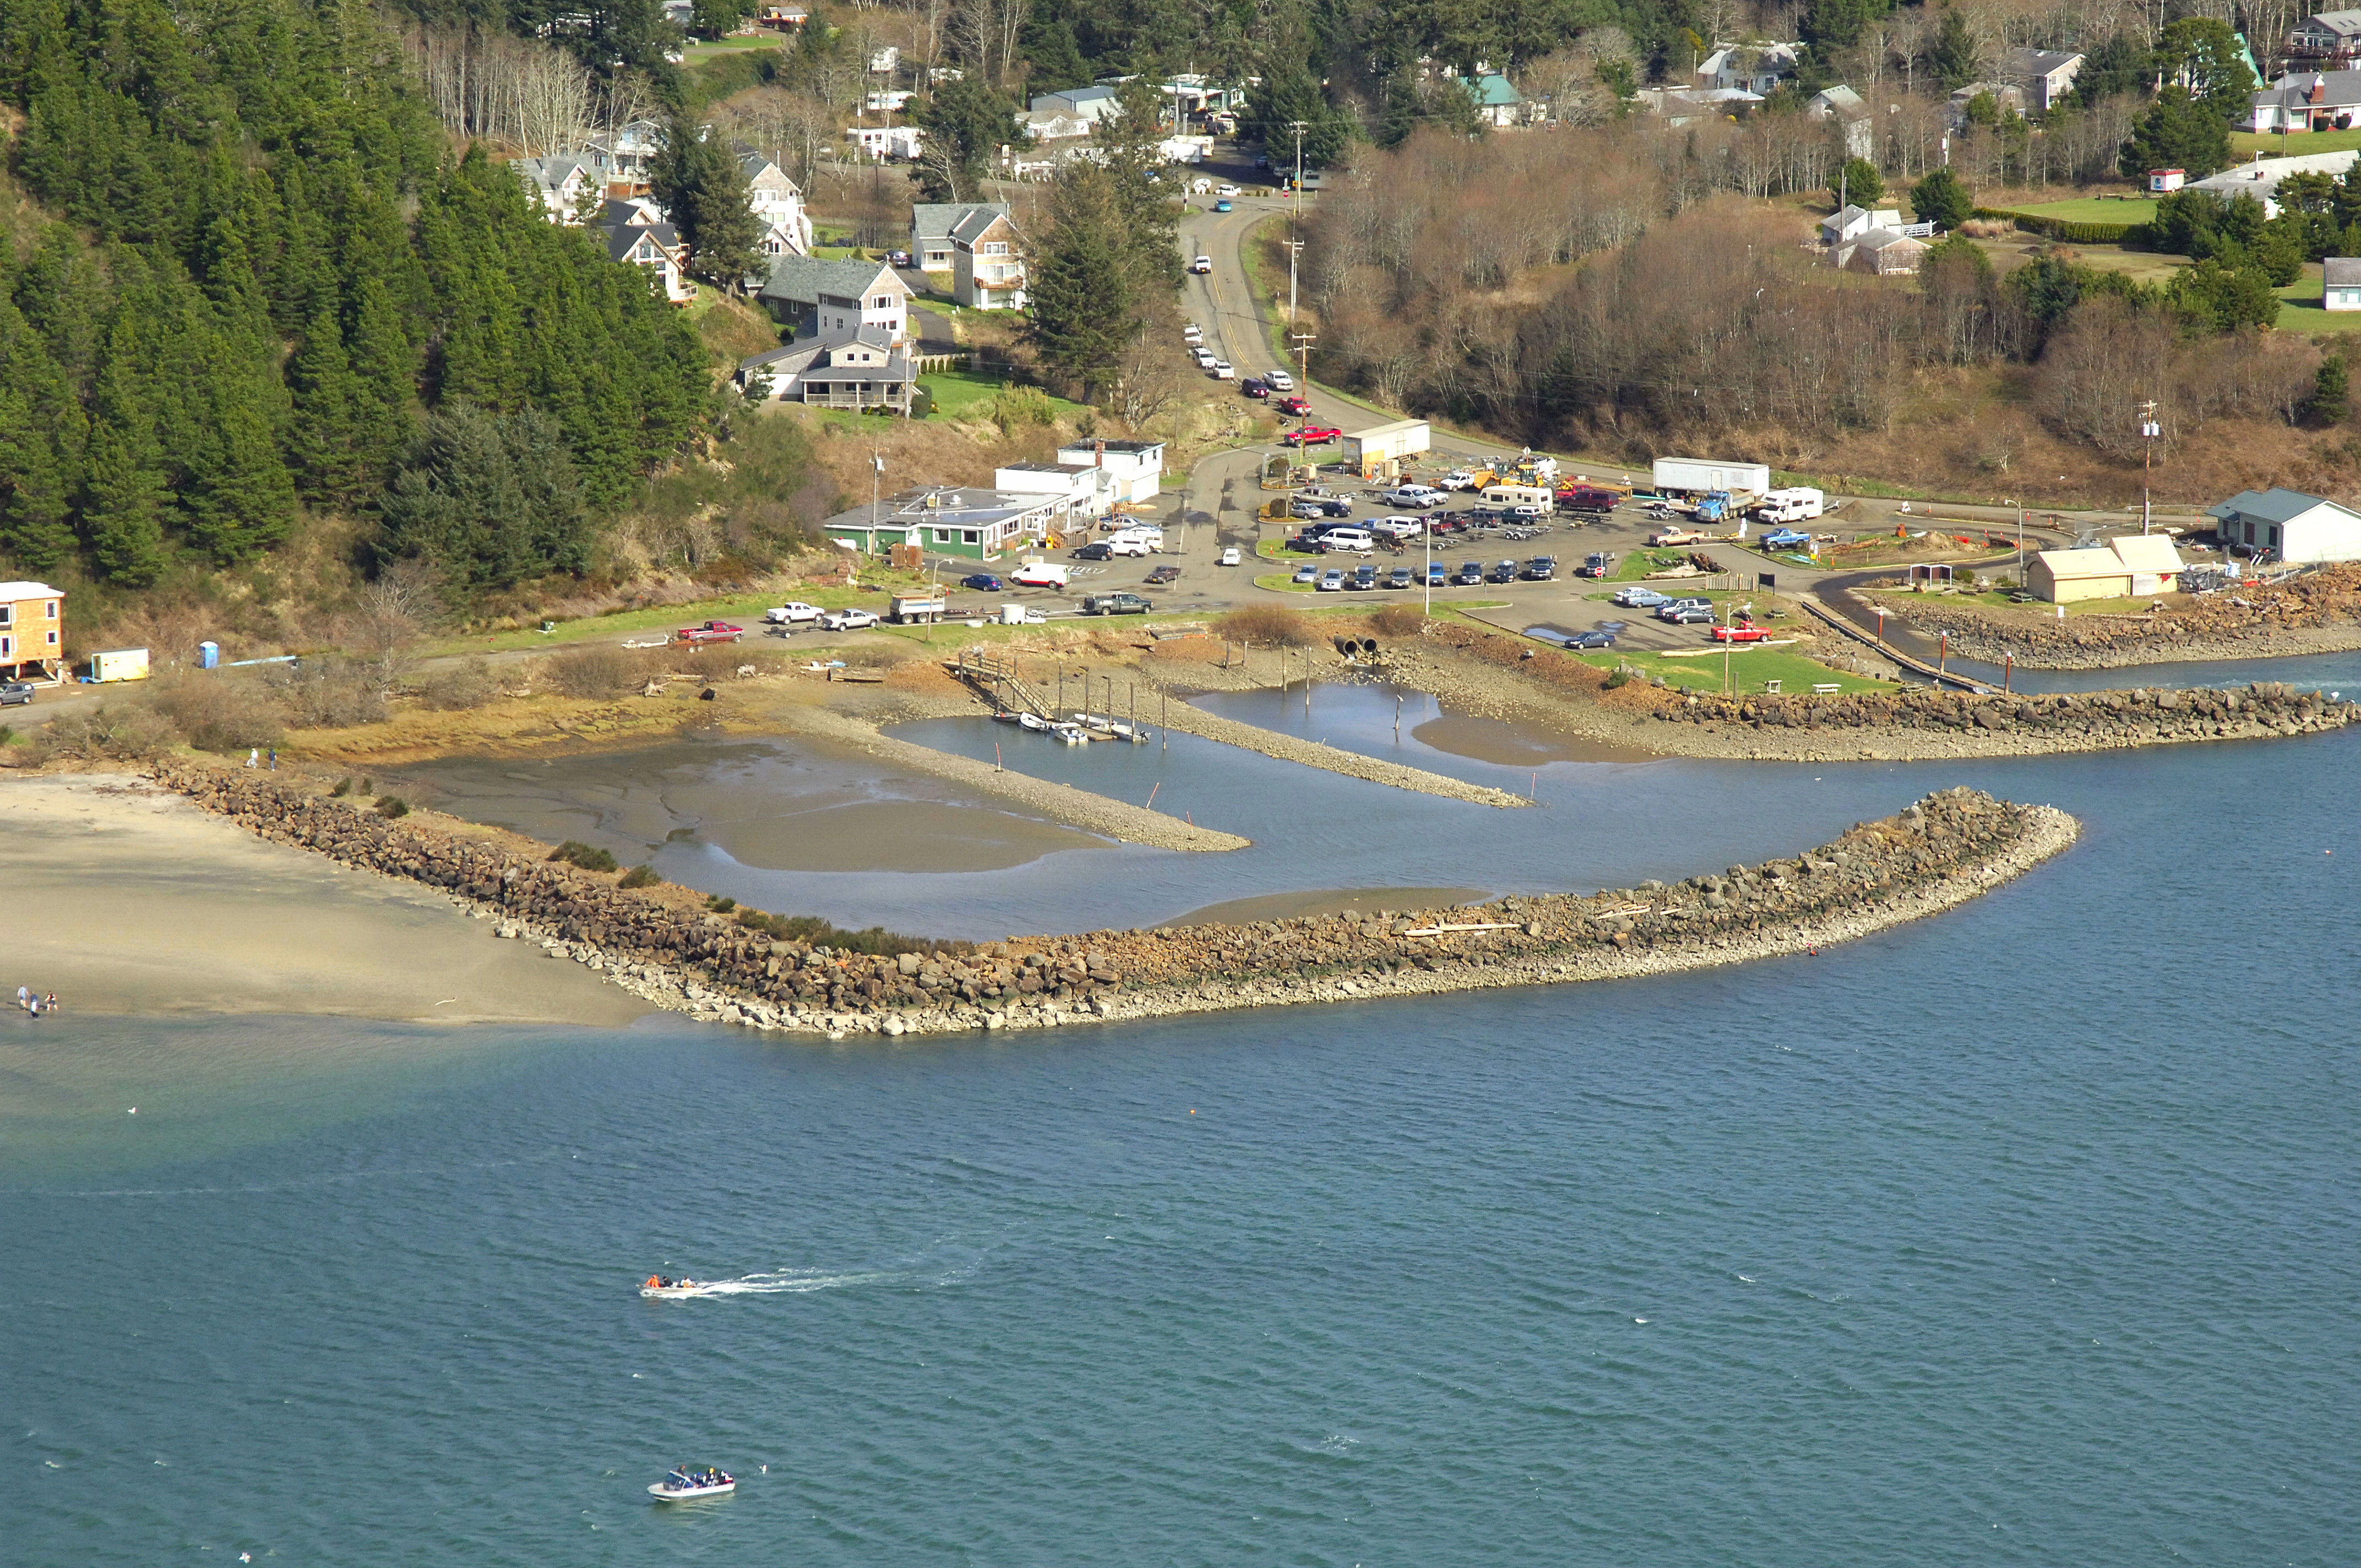 Netarts Bay RV Park & Marina in Tillamook, OR, United States